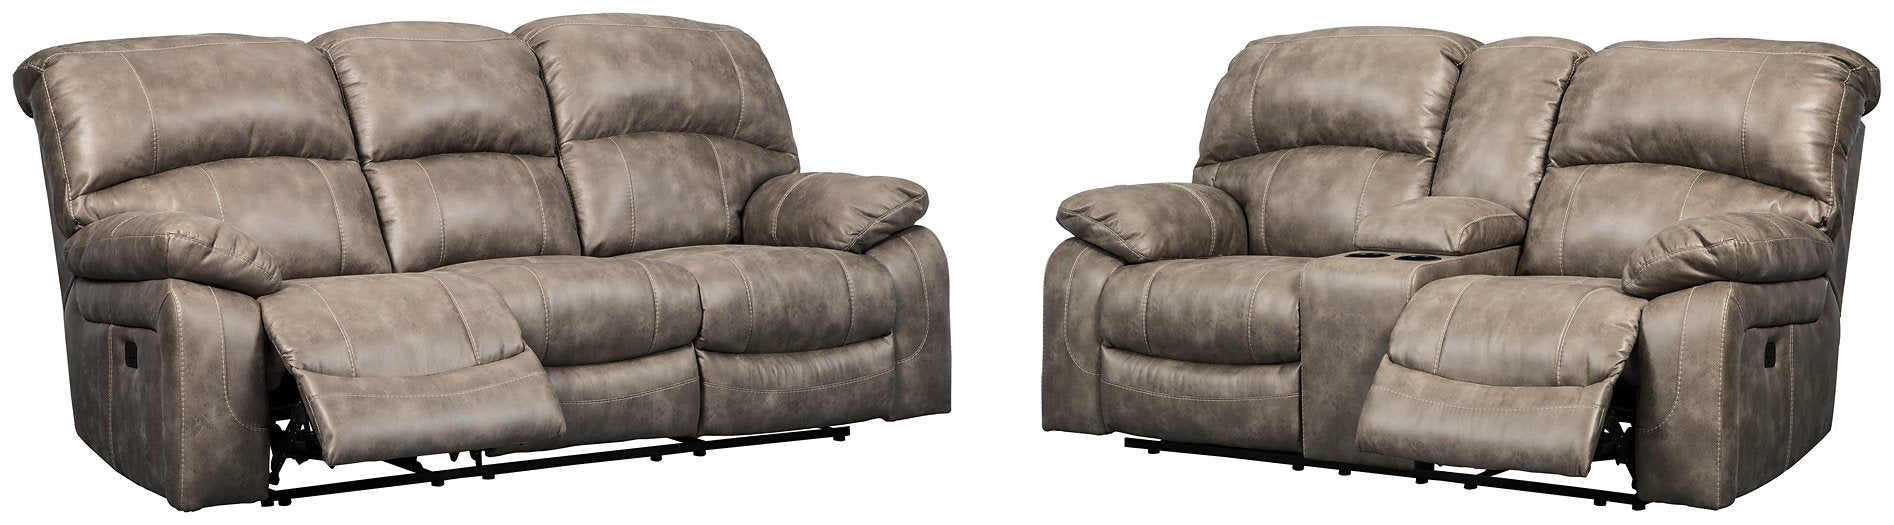 Dunwell Signature Design 2-Piece Living Room Set image